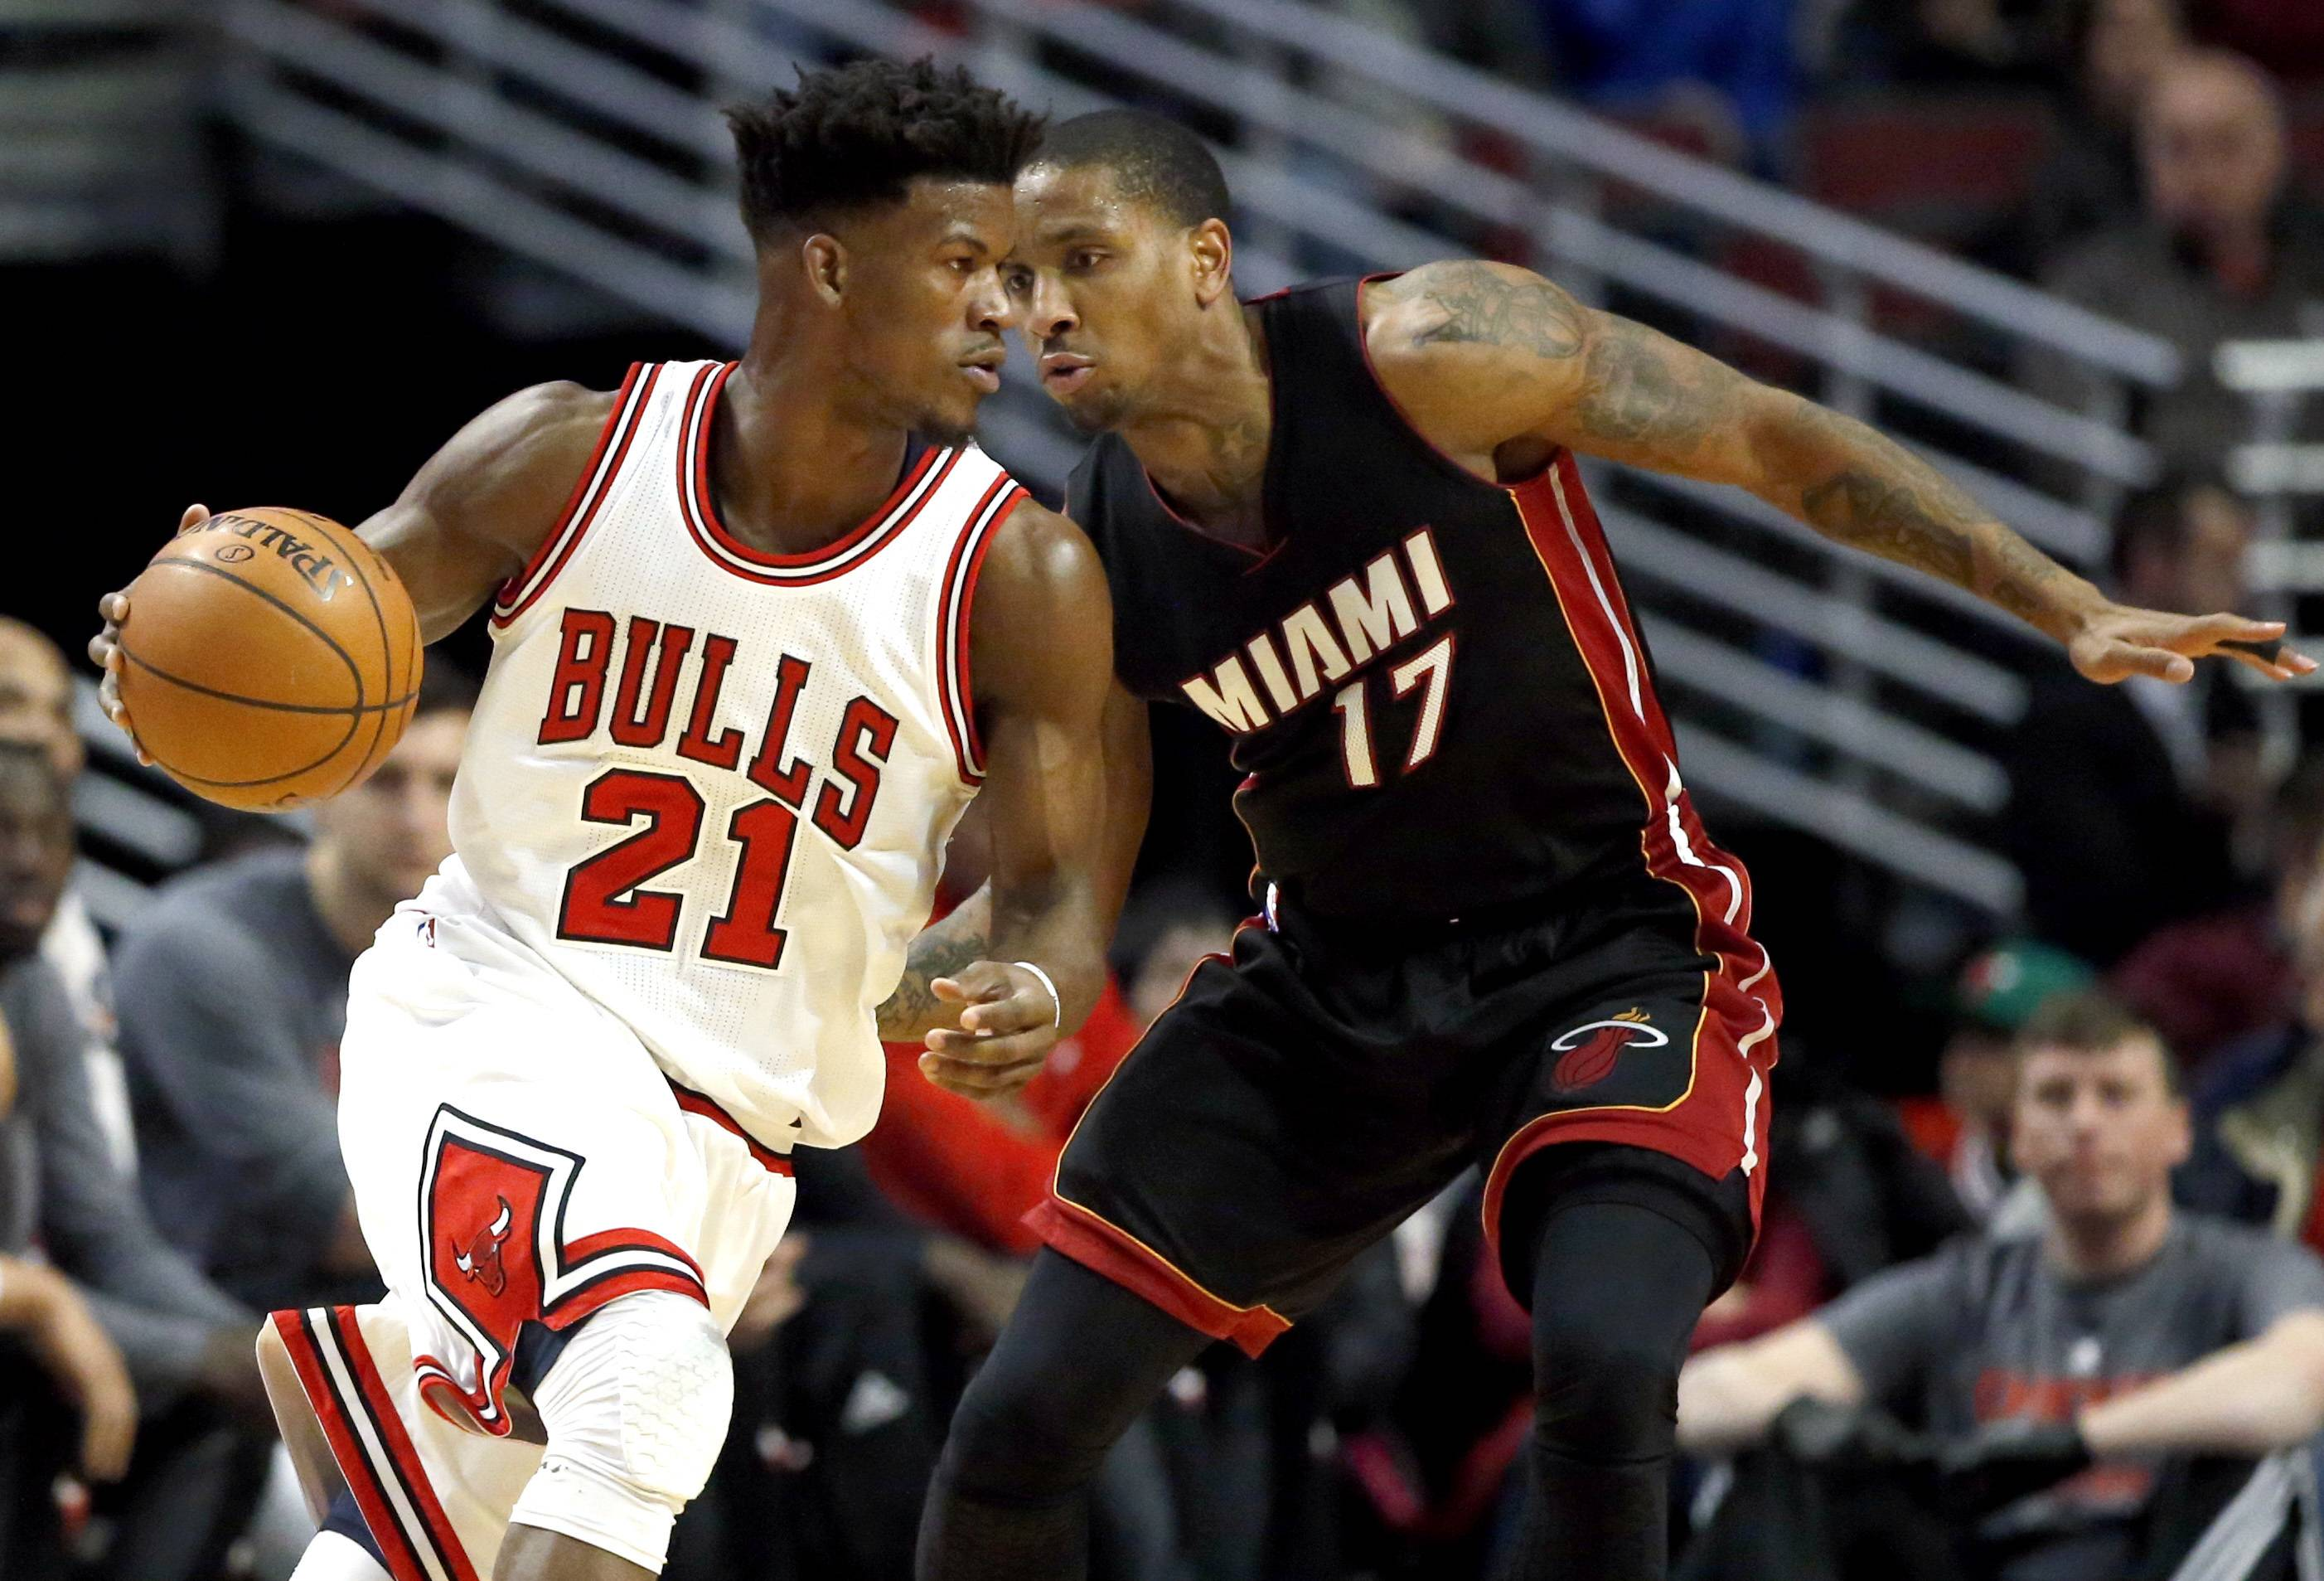 Chicago Bulls guard/forward Jimmy Butler, left, drives against Miami Heat guard Rodney McGruder during the first half of an NBA basketball game Saturday, Dec. 10, 2016, in Chicago. (AP Photo/Nam Y. Huh)